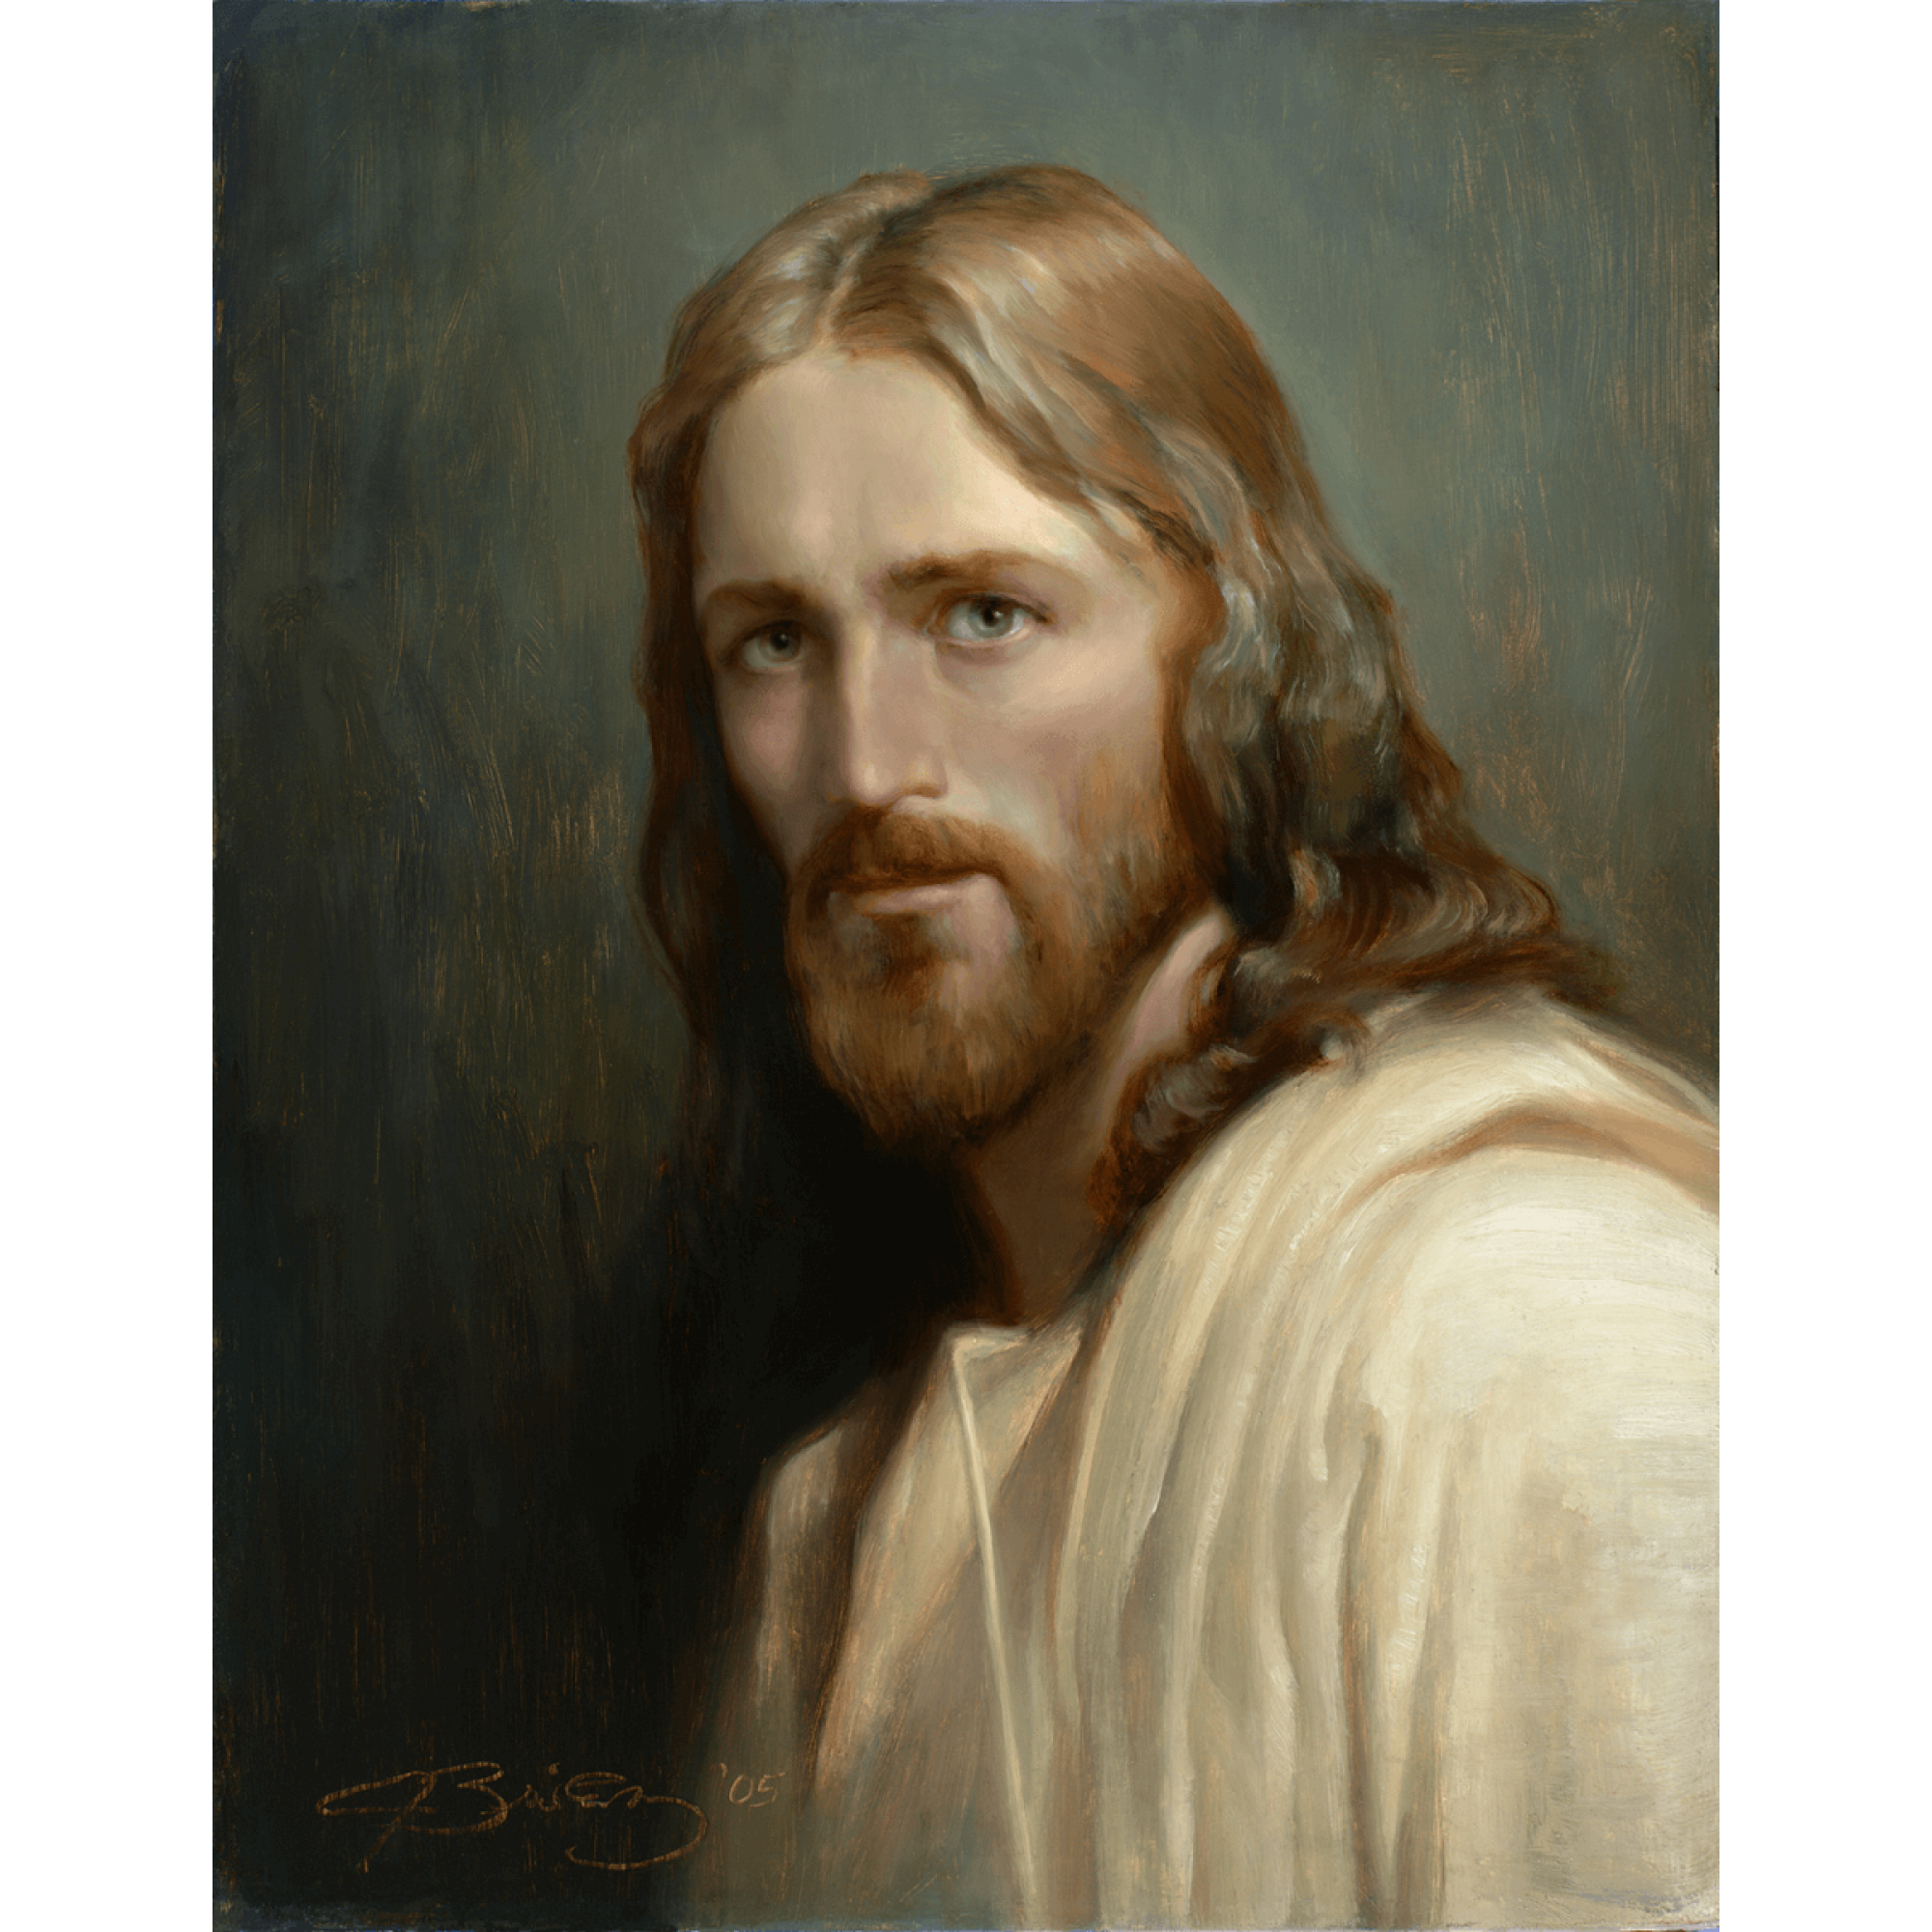 Bible Christ Latter-Day Of Saints Jesus Depiction PNG Image